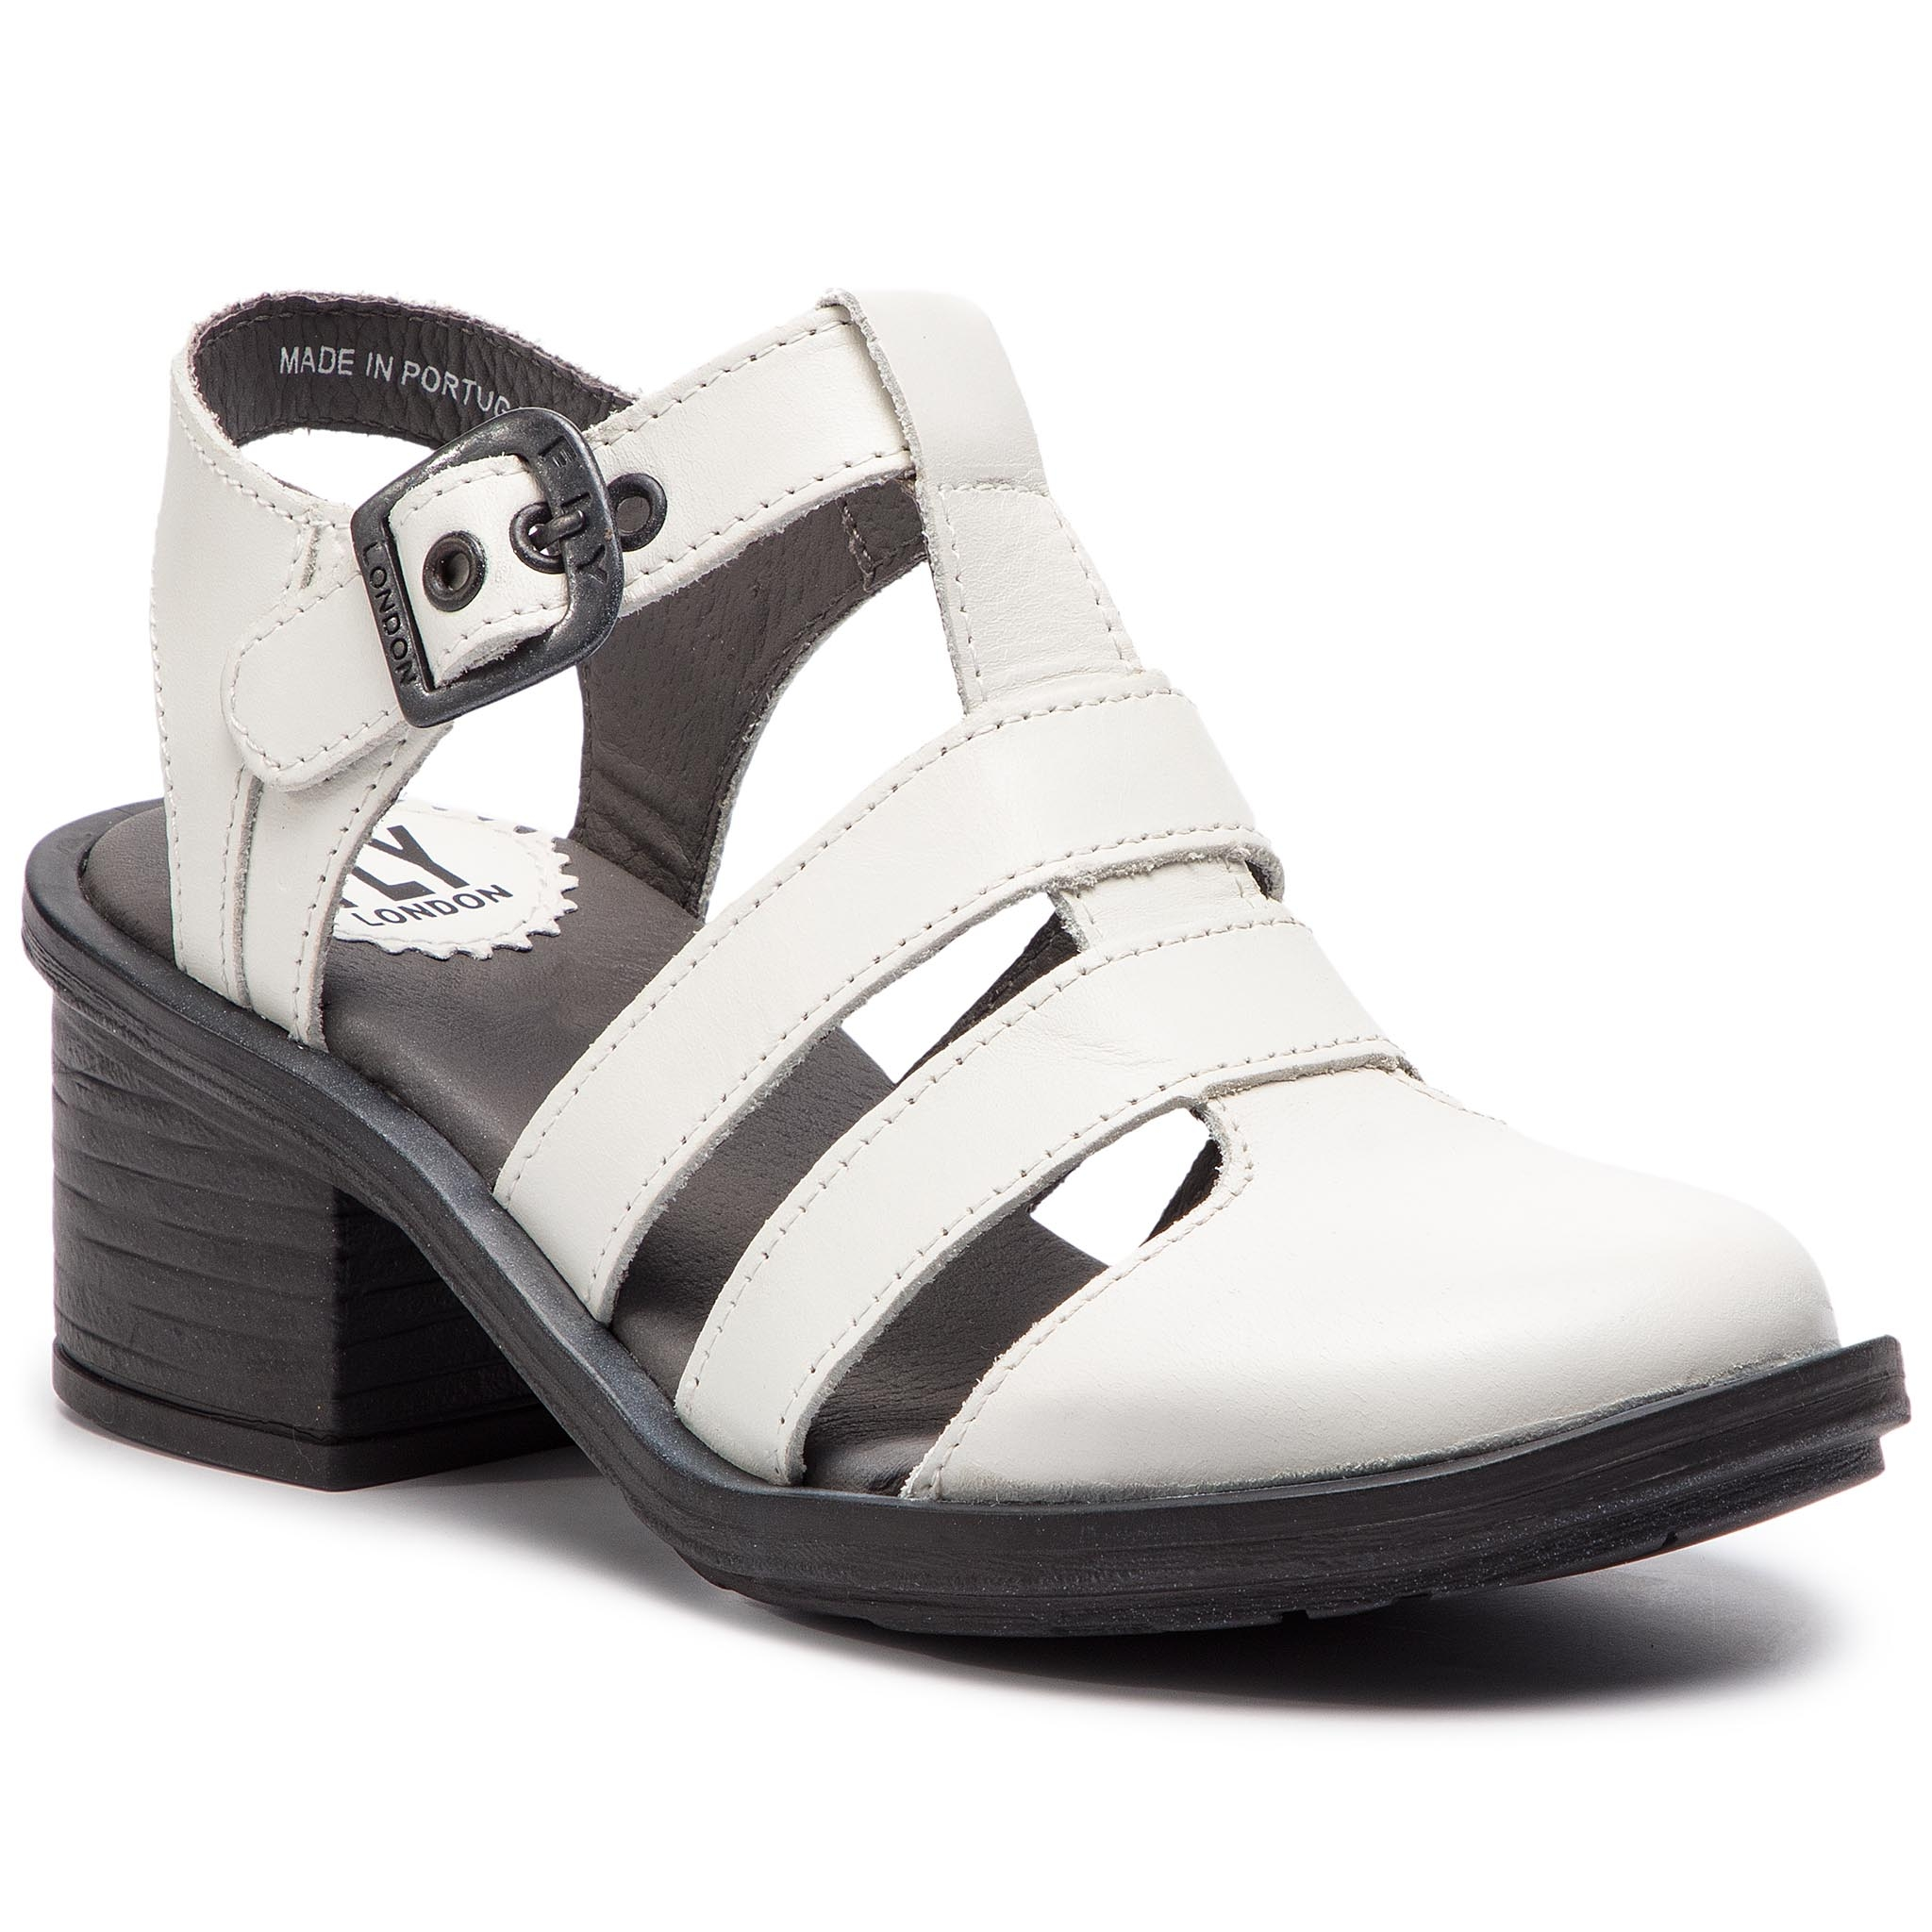 Sandály FLY LONDON - Cahyfly P144195004 Offwhite